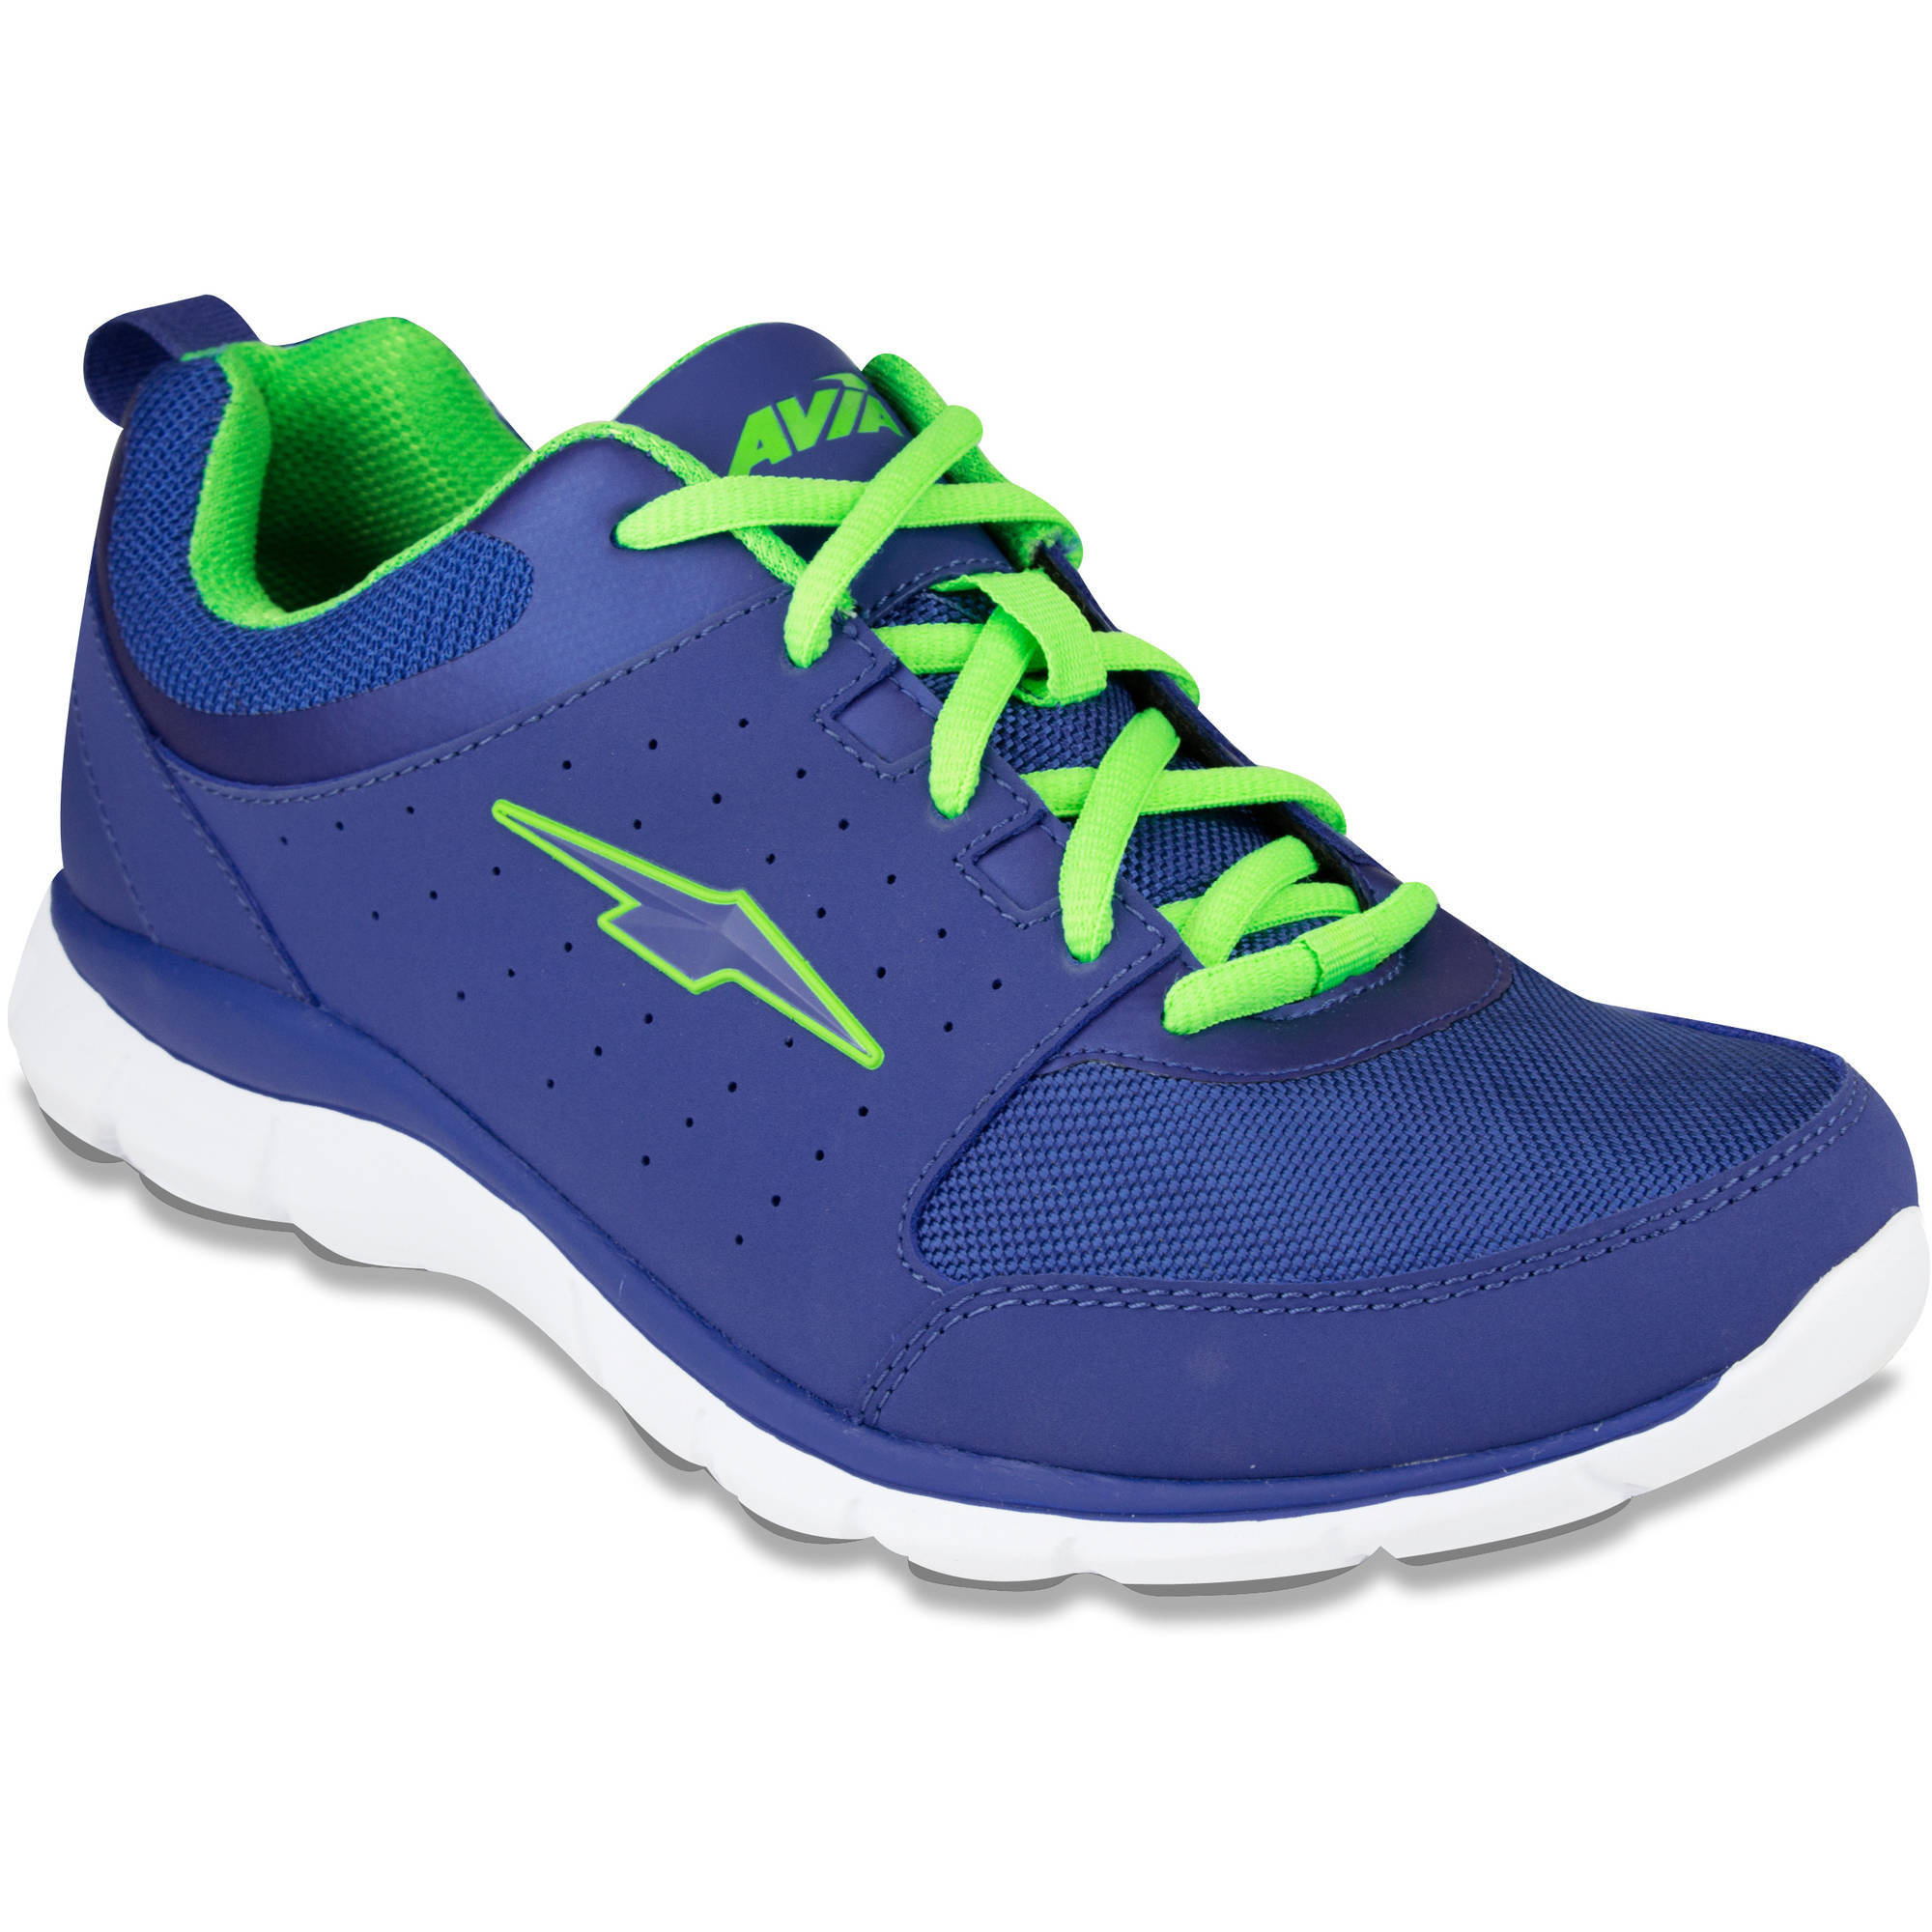 Avia Crown Blue Slip Resistant Shoe